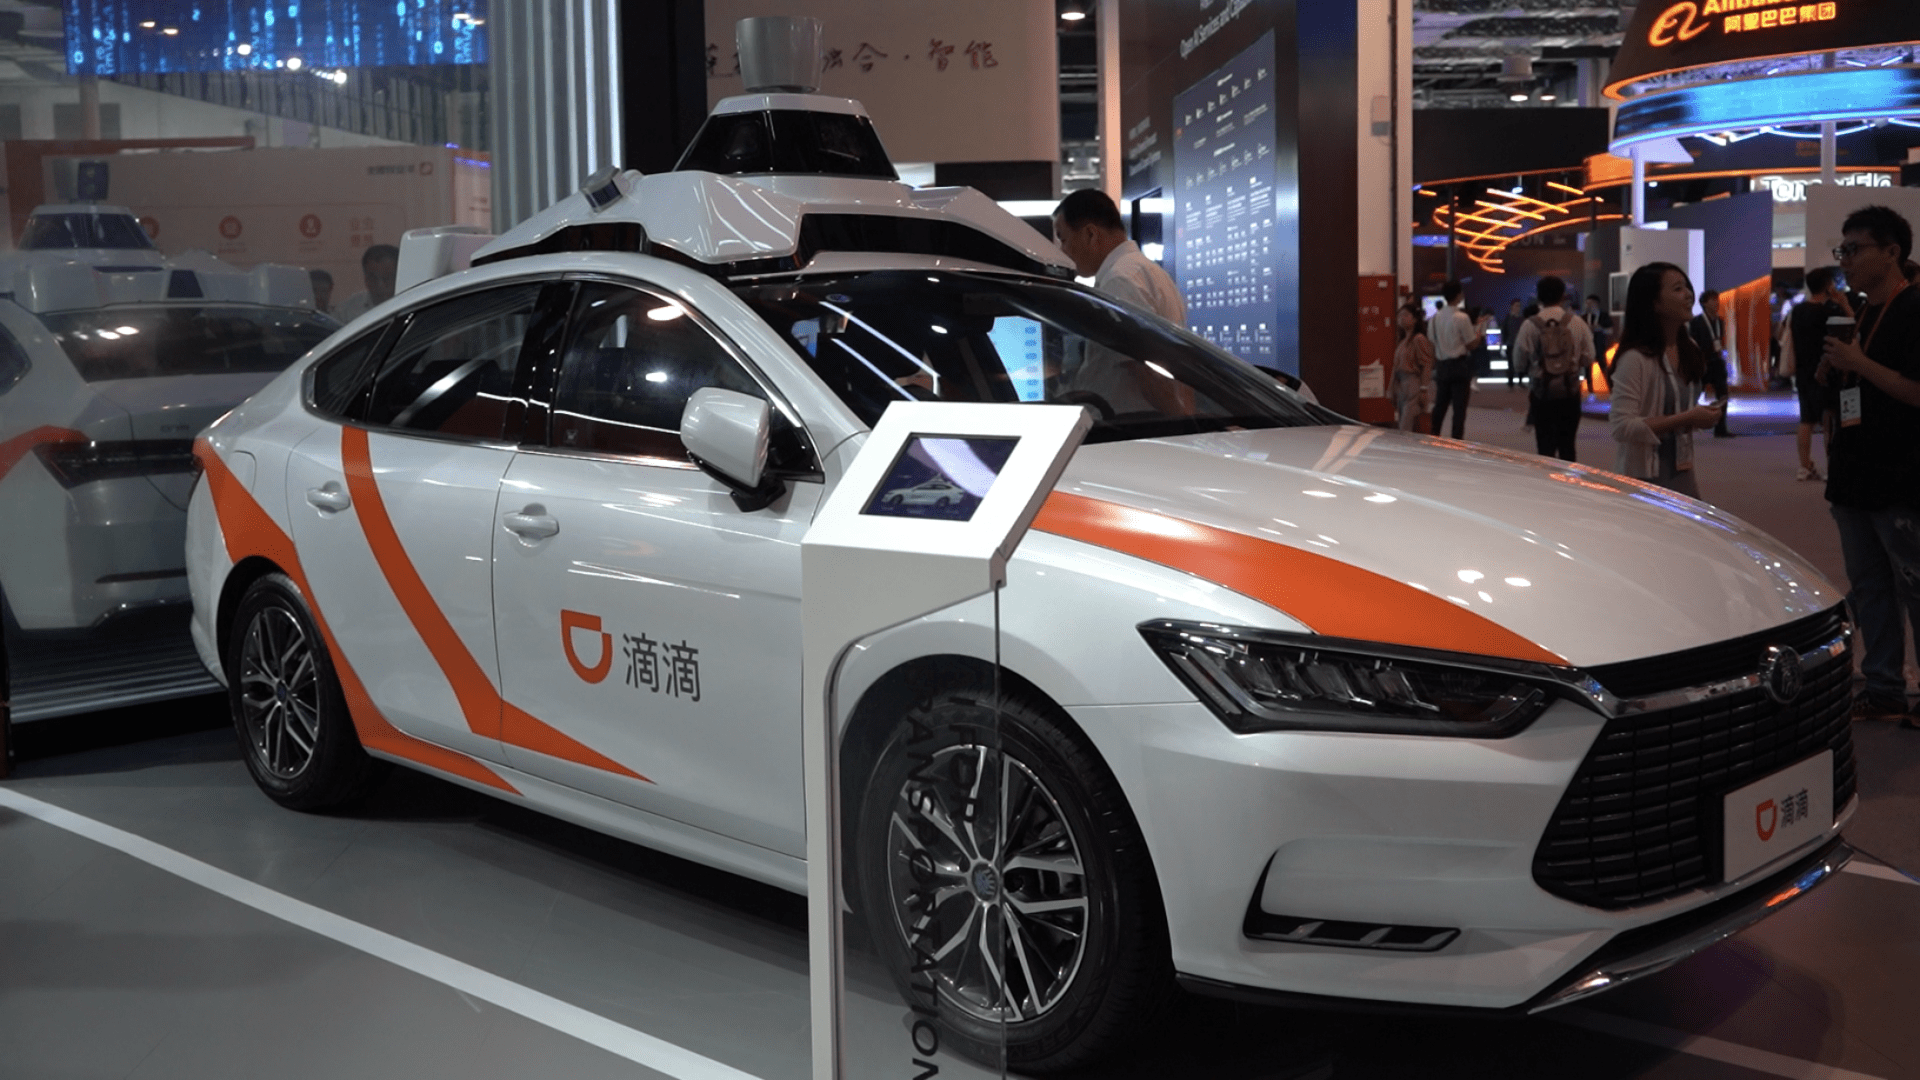 Self-driving pickup service to be launched in Shanghai by DiDi